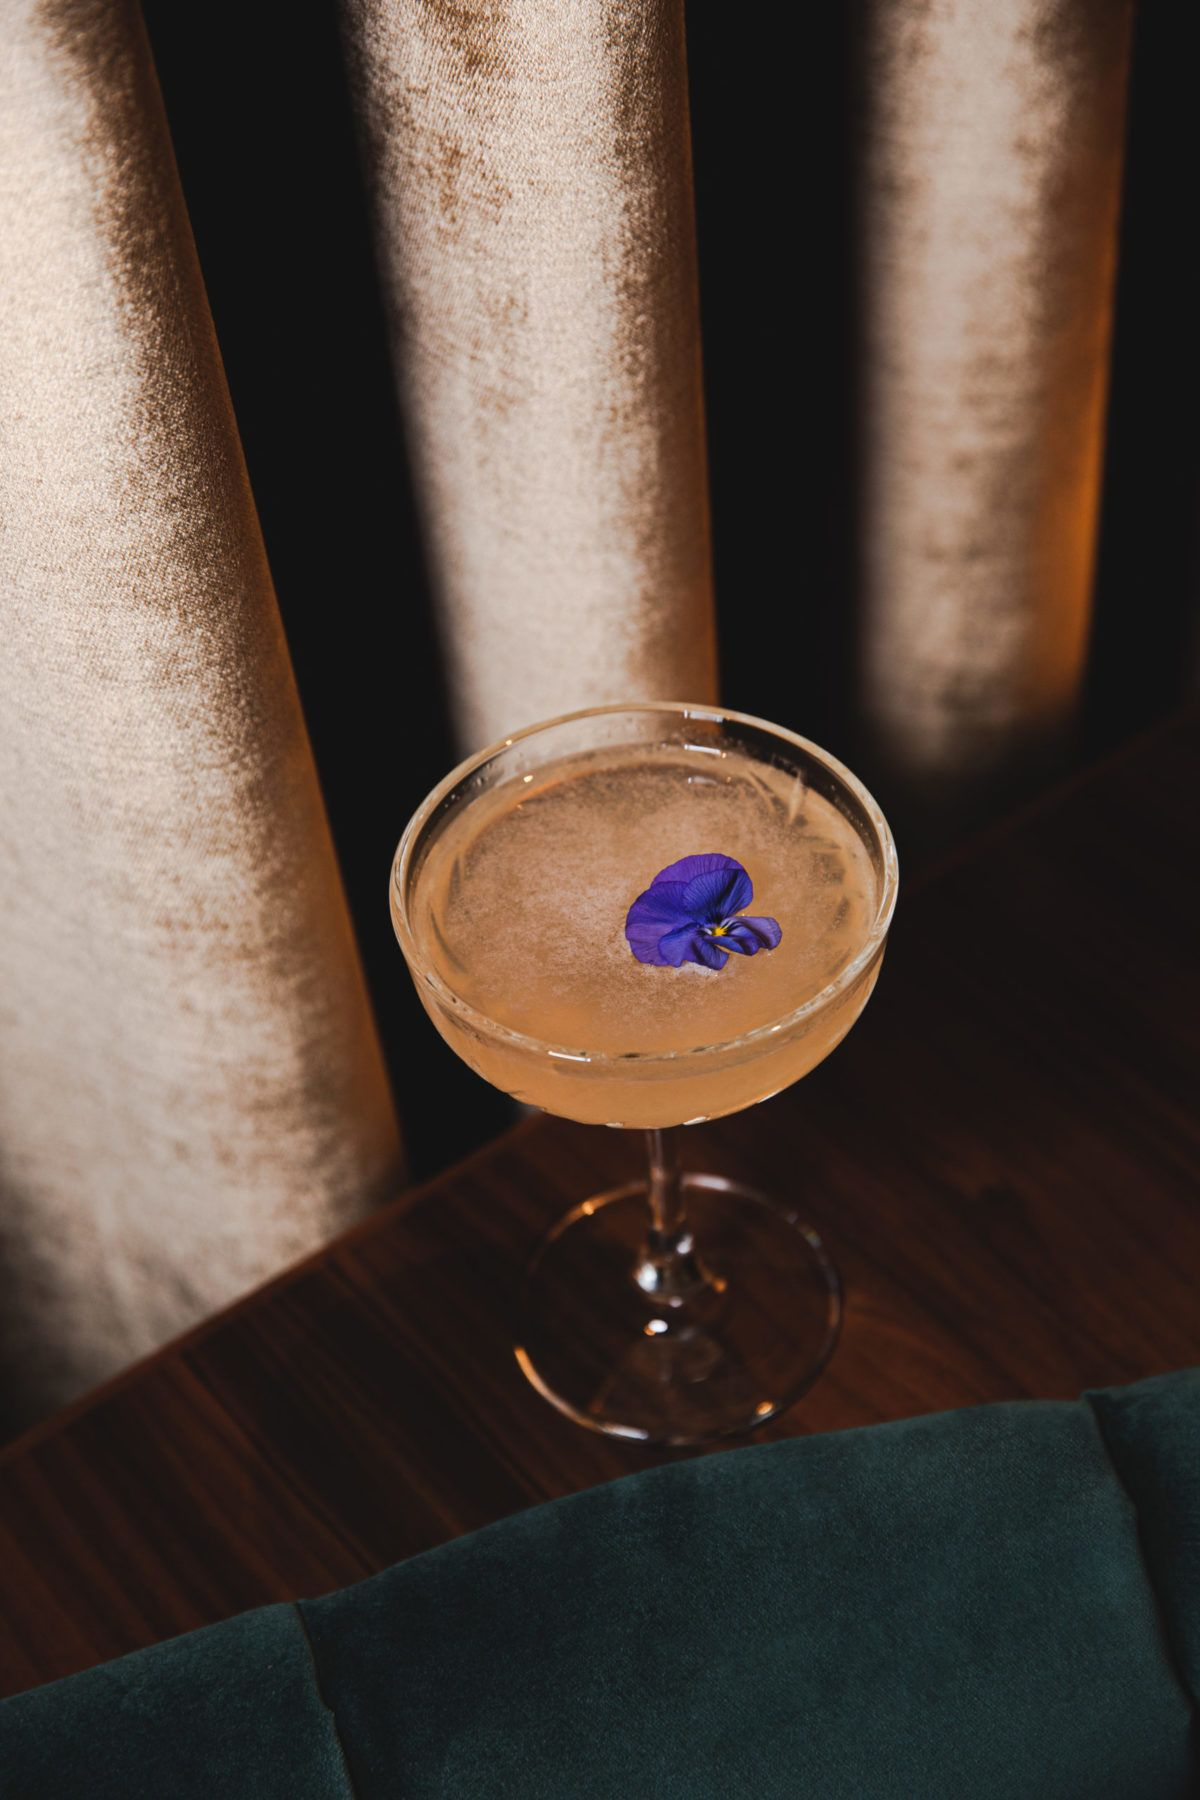 Cocktail in Coupe Glass with purple flower